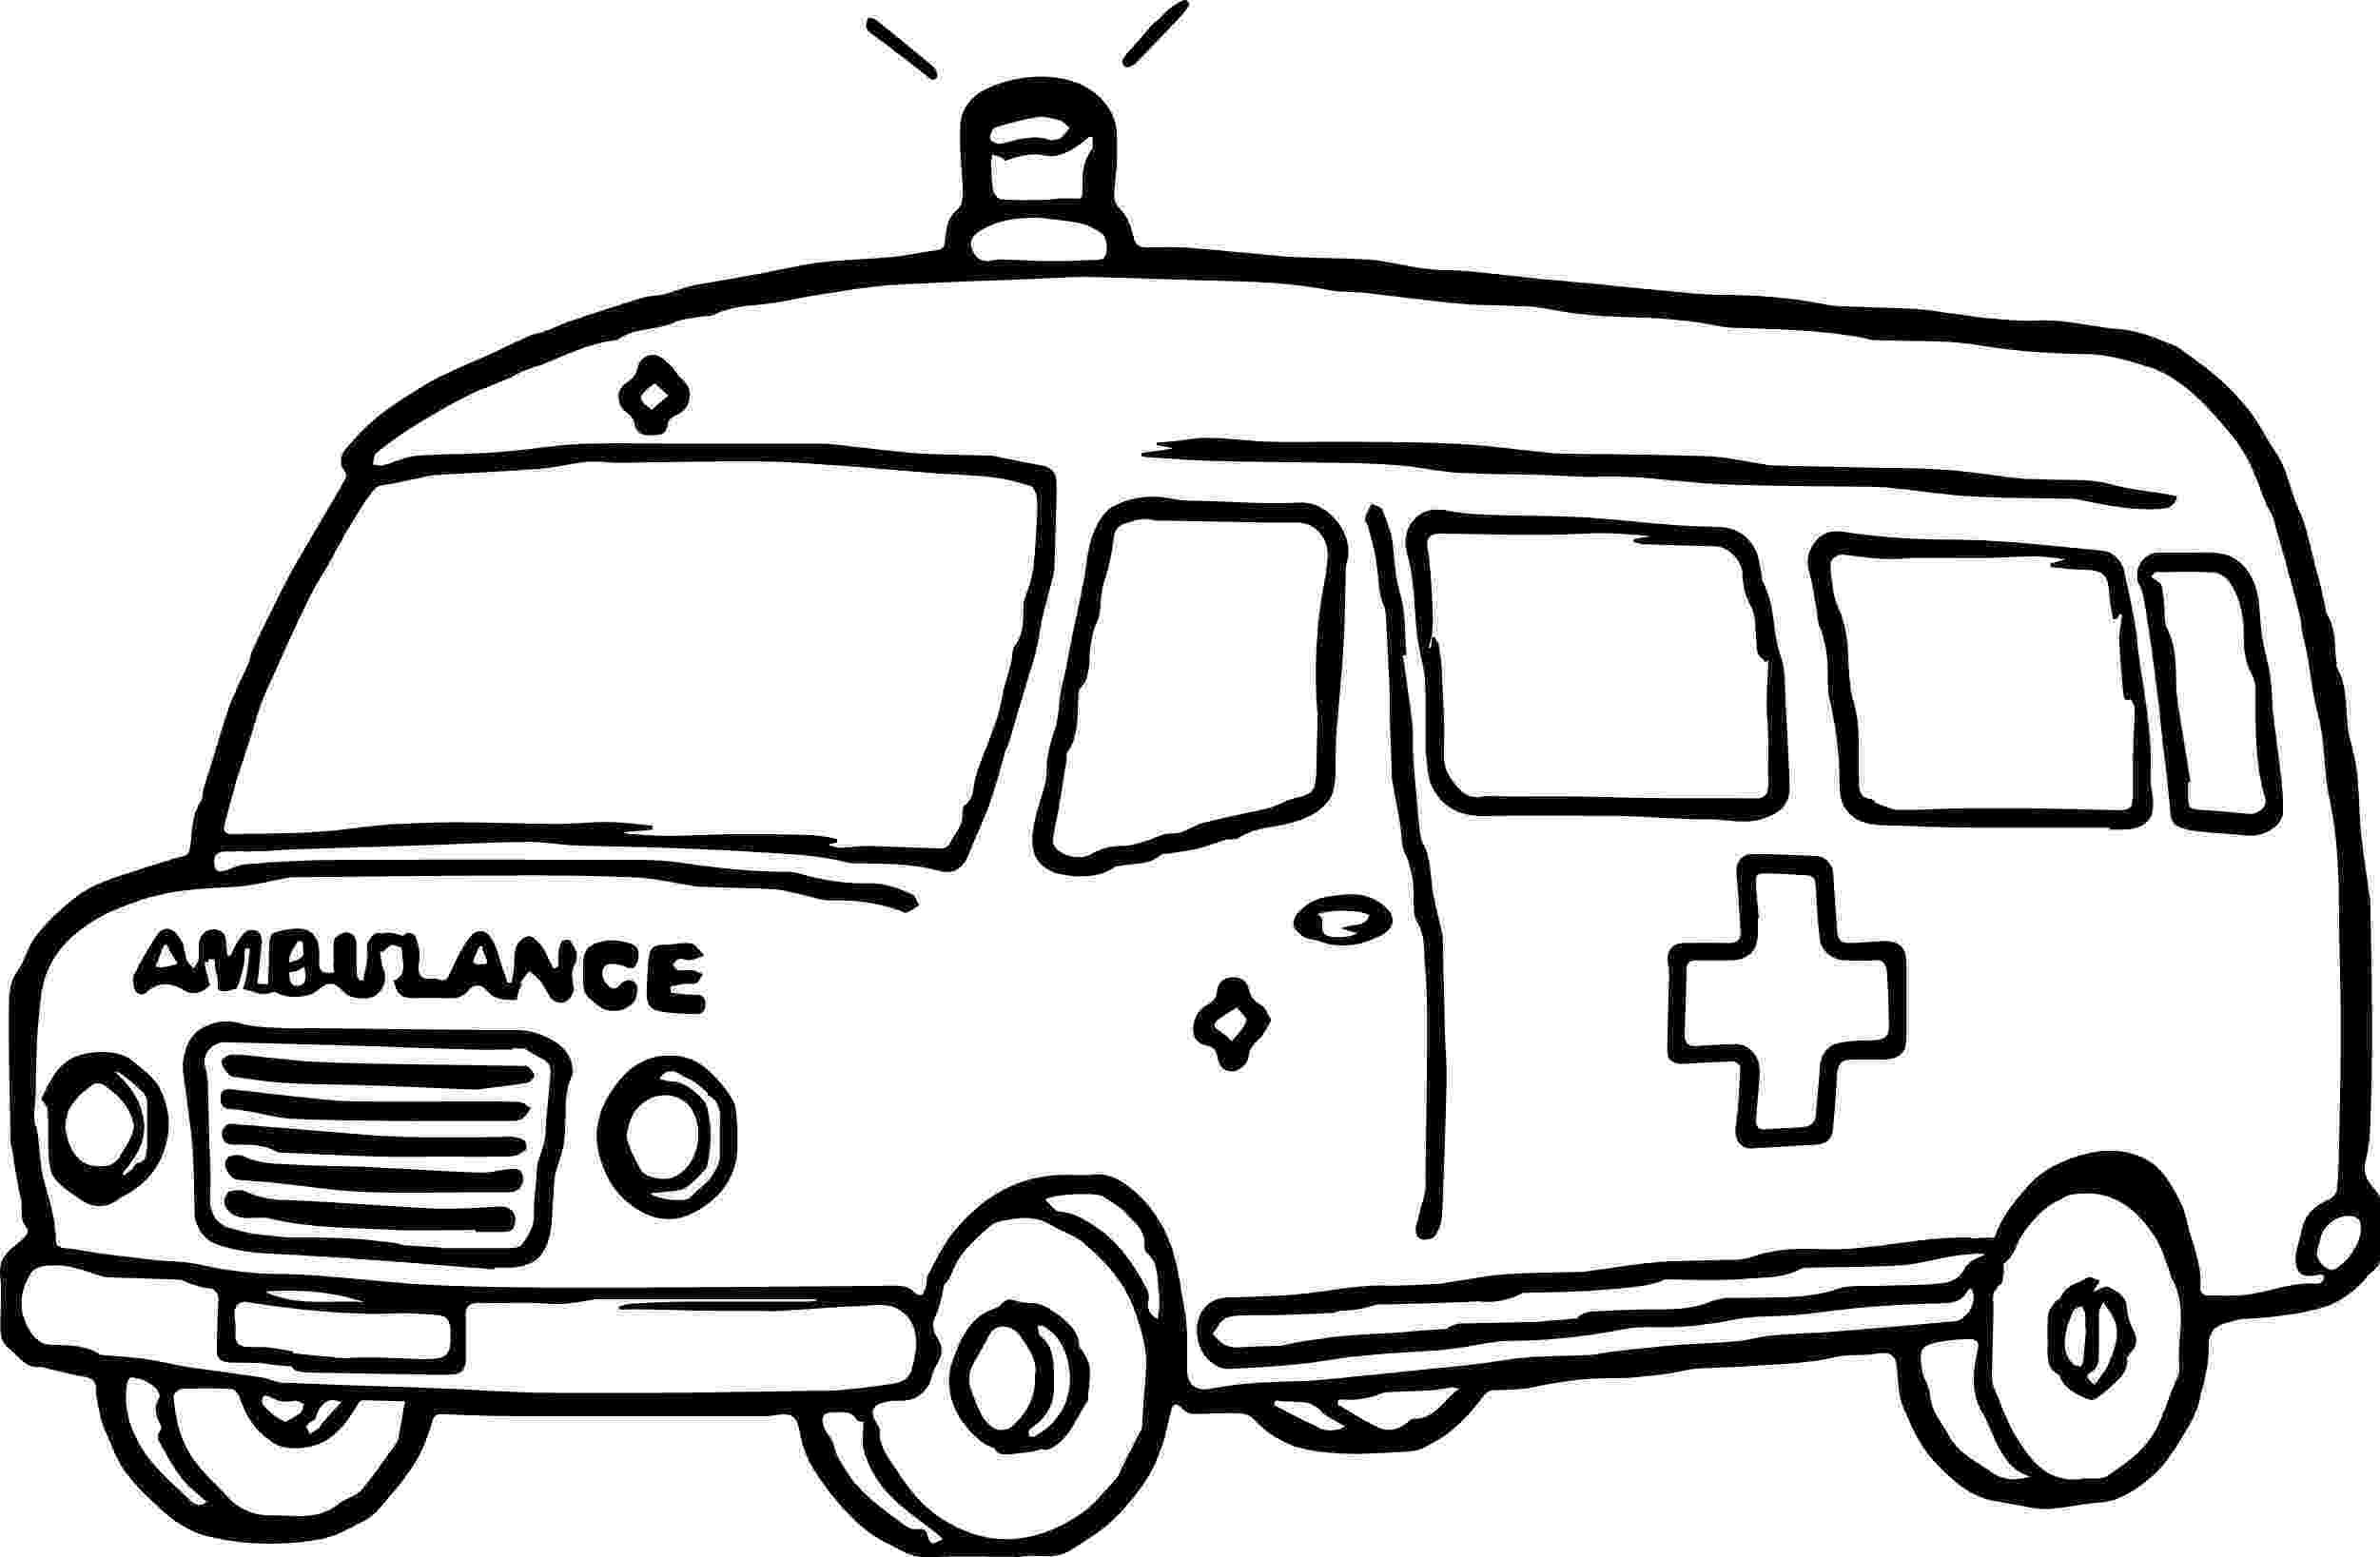 ambulance pictures to color 1000 images about kid39s first aid on pinterest to pictures color ambulance